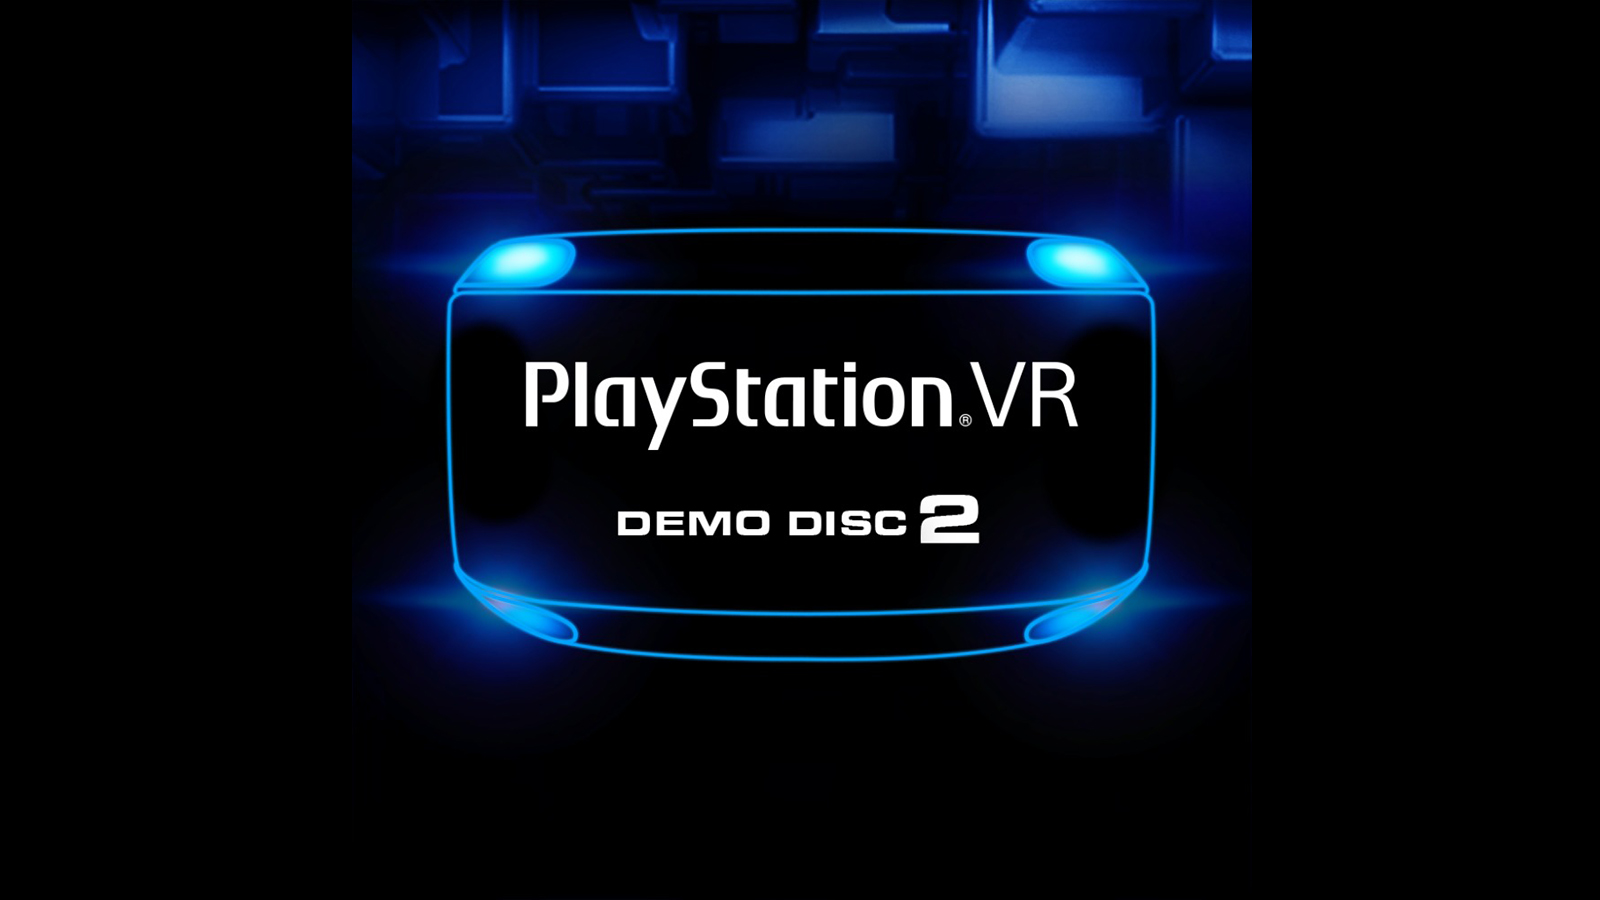 PlayStation VR Demo Disc 2 Game | PS4 - PlayStation